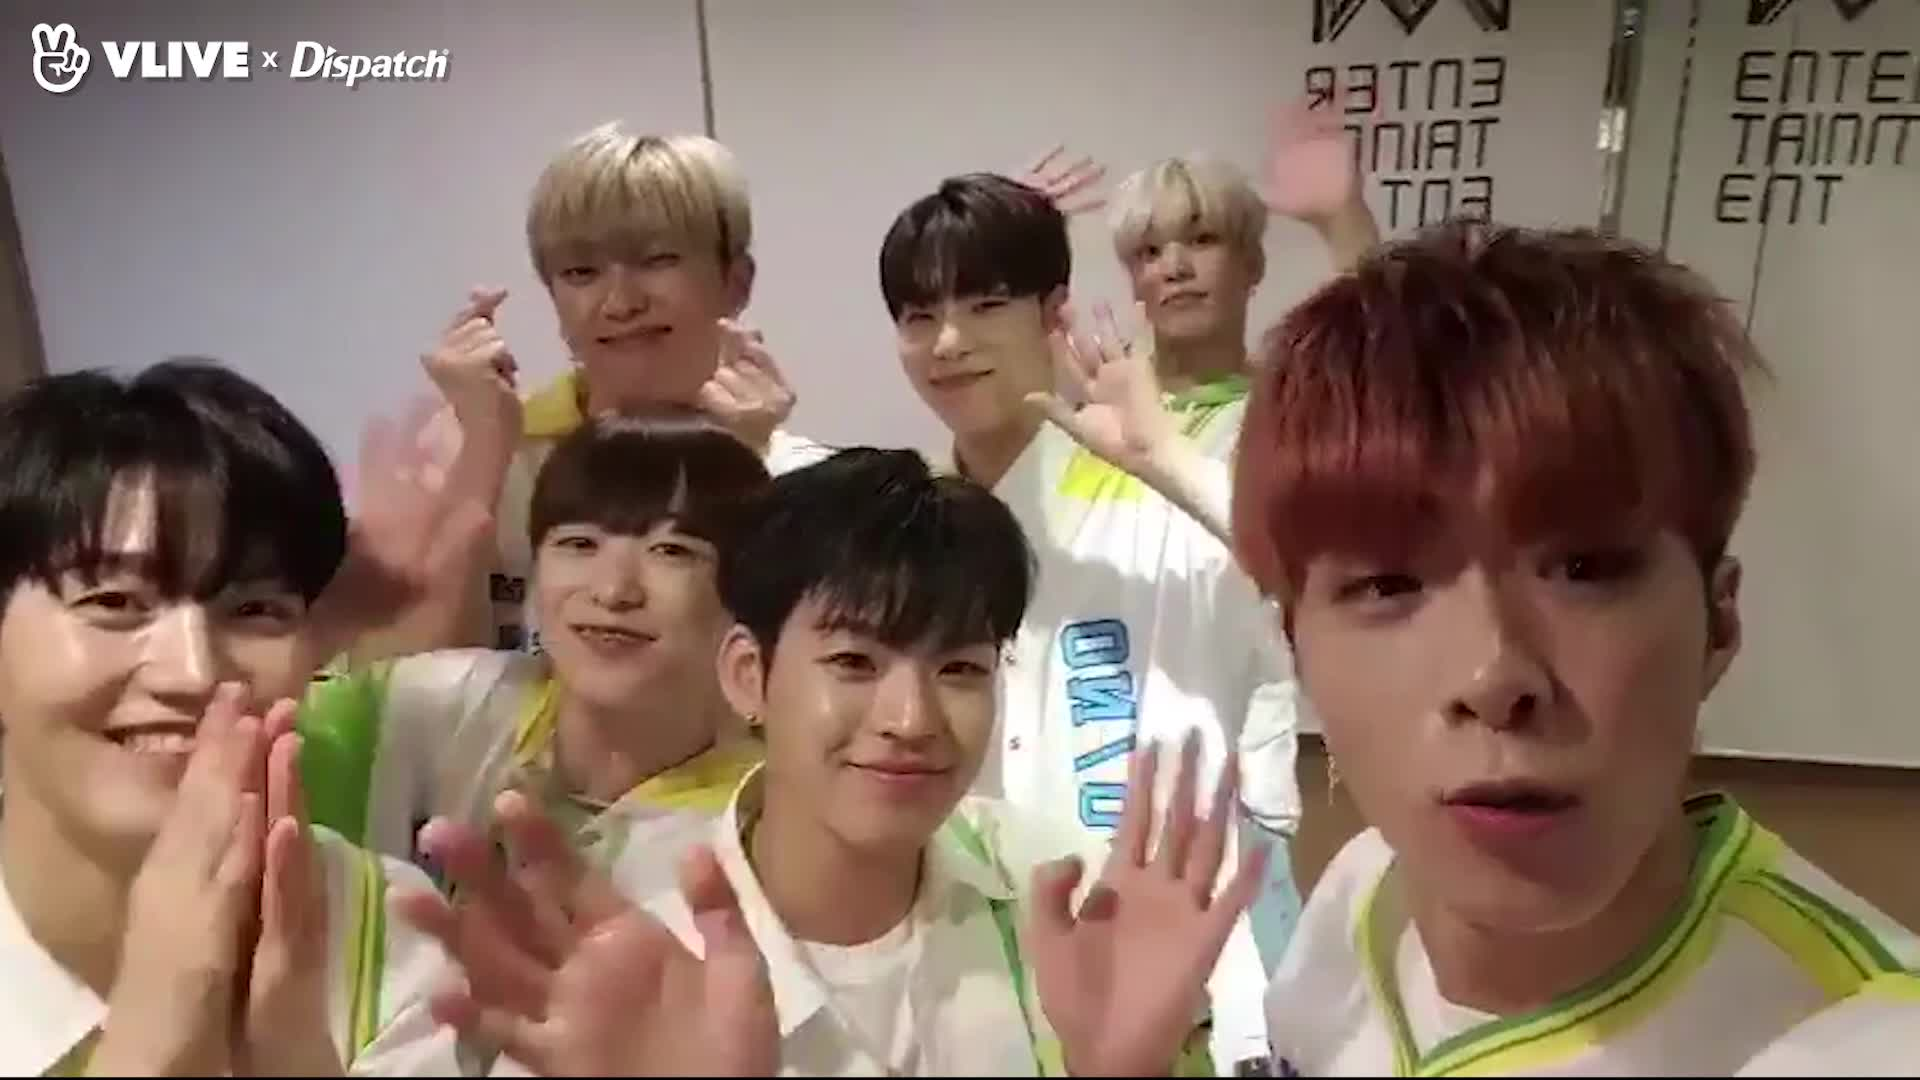 Welcome Opening for 'V Dispatch' 온앤오프 (ONF)